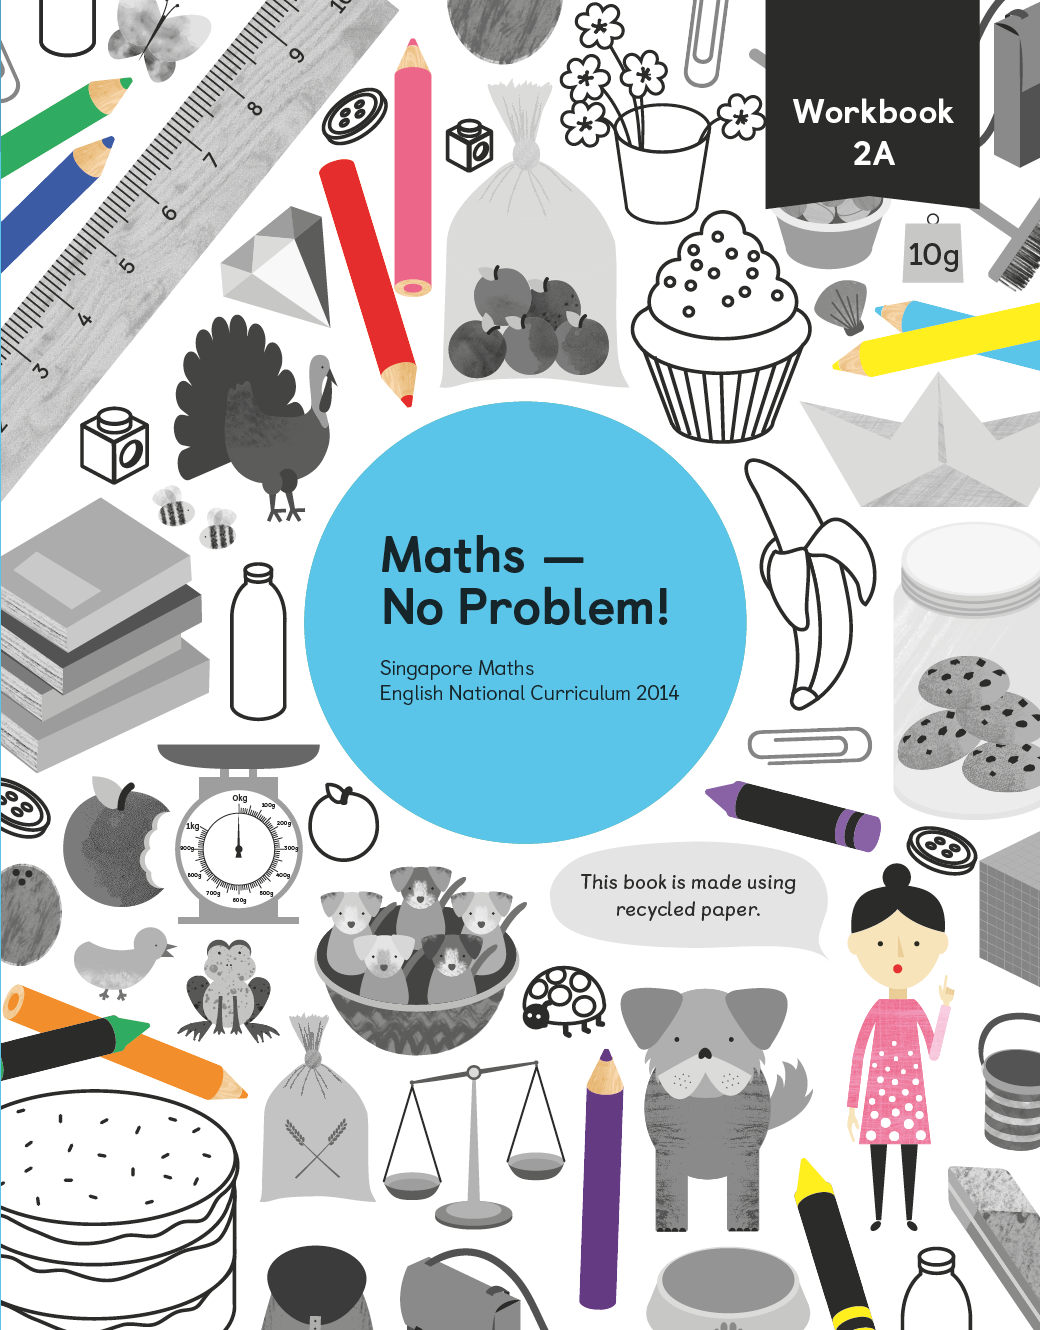 Workbooks key stage 2 workbooks : Maths — No Problem! 2A Workbook 9781910504031 | Year 2 maths ...